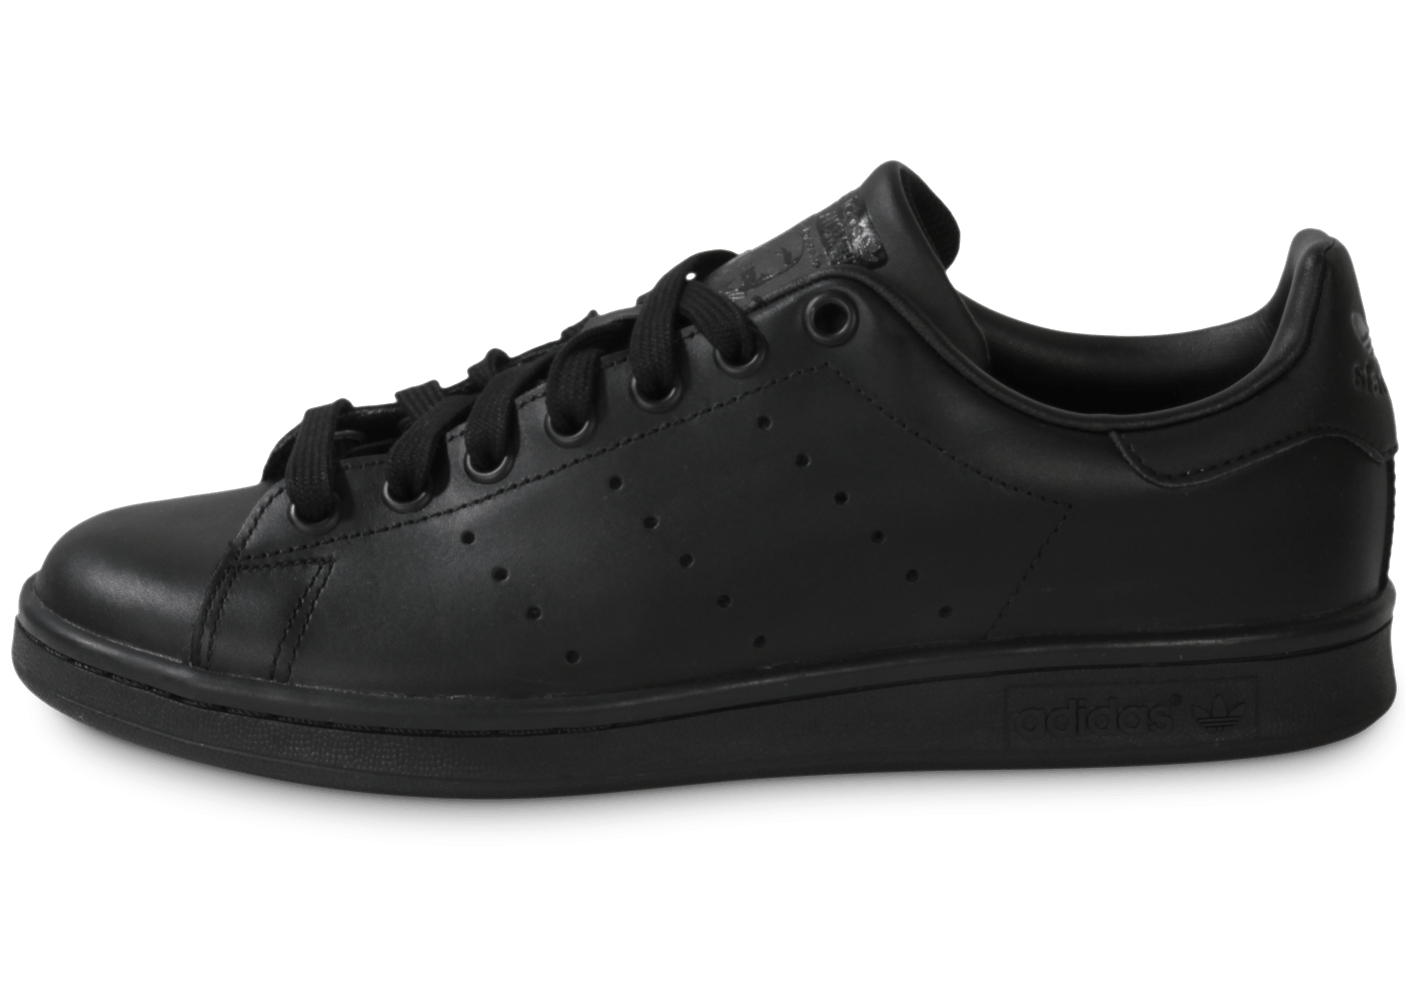 stan smith adidas noire